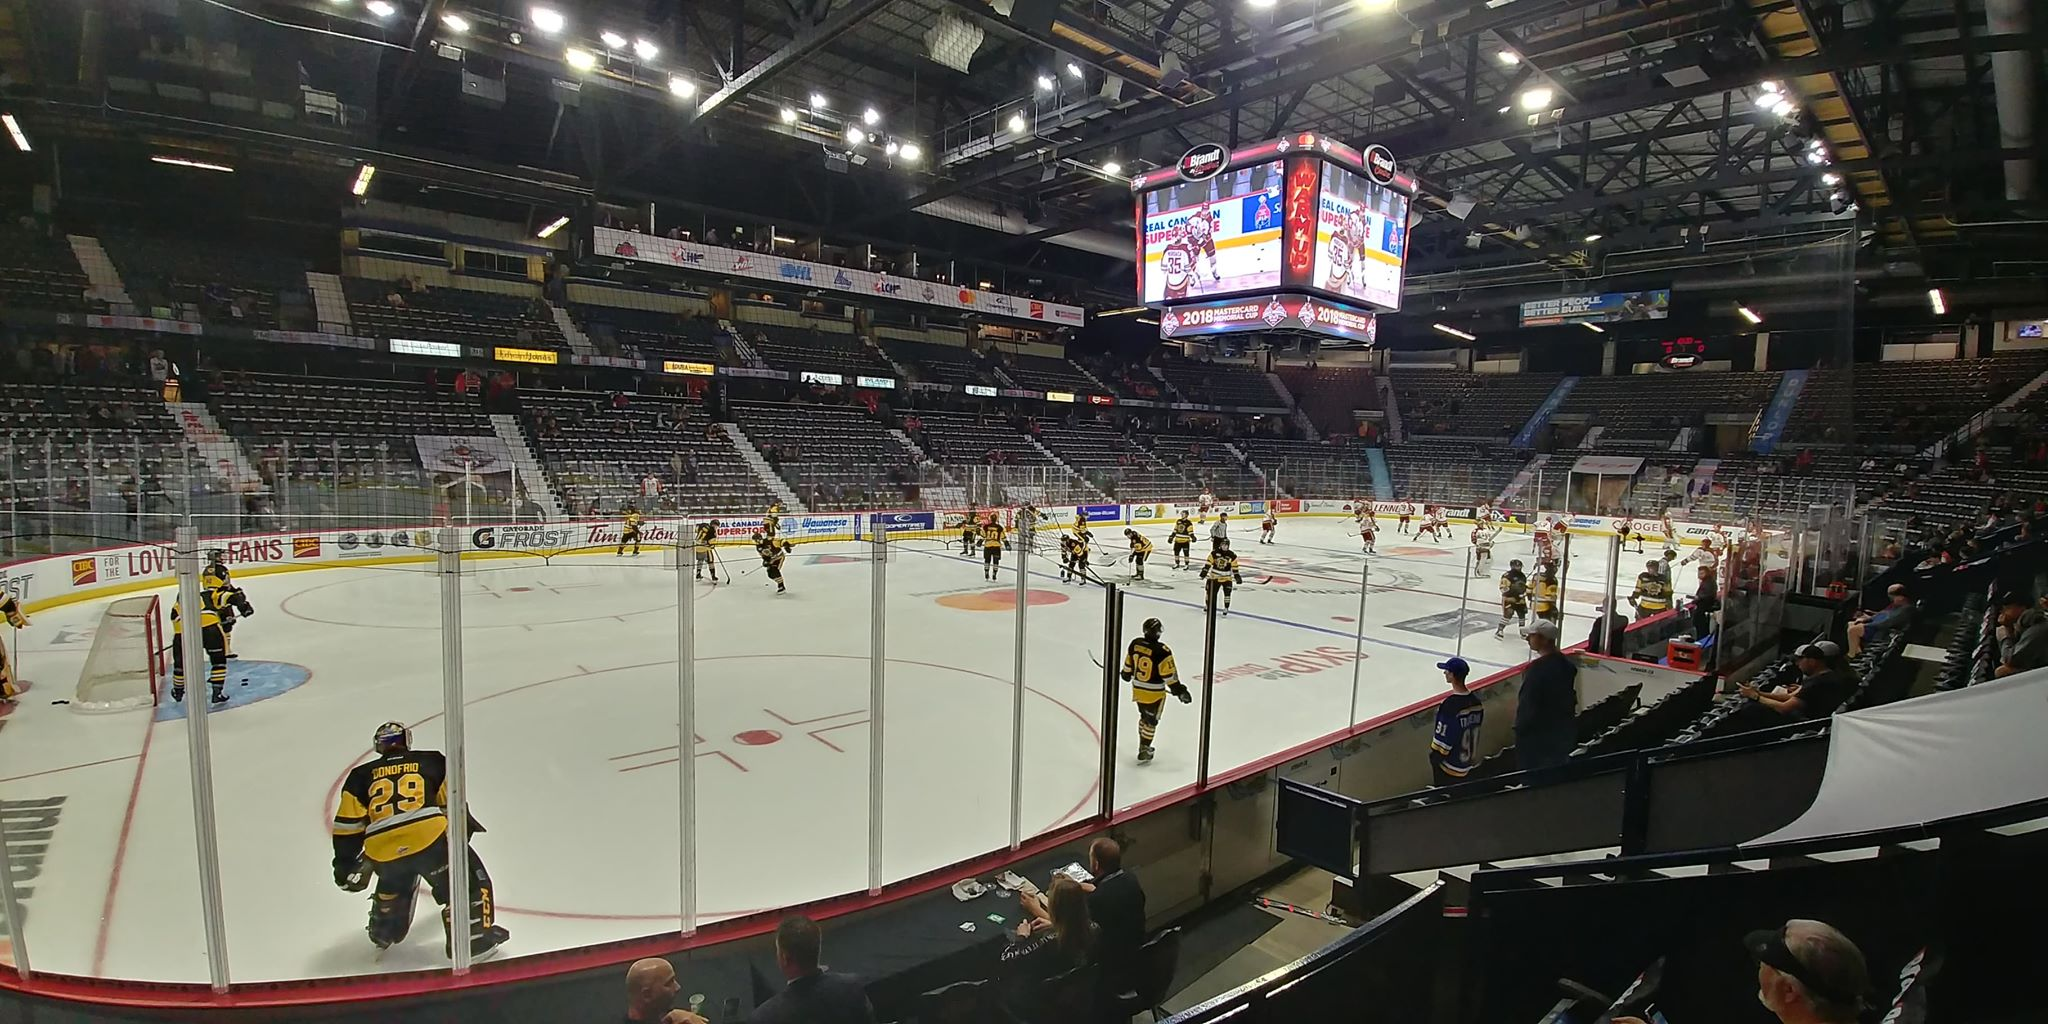 Hockey fans from across Canada attending Memorial Cup in Regina